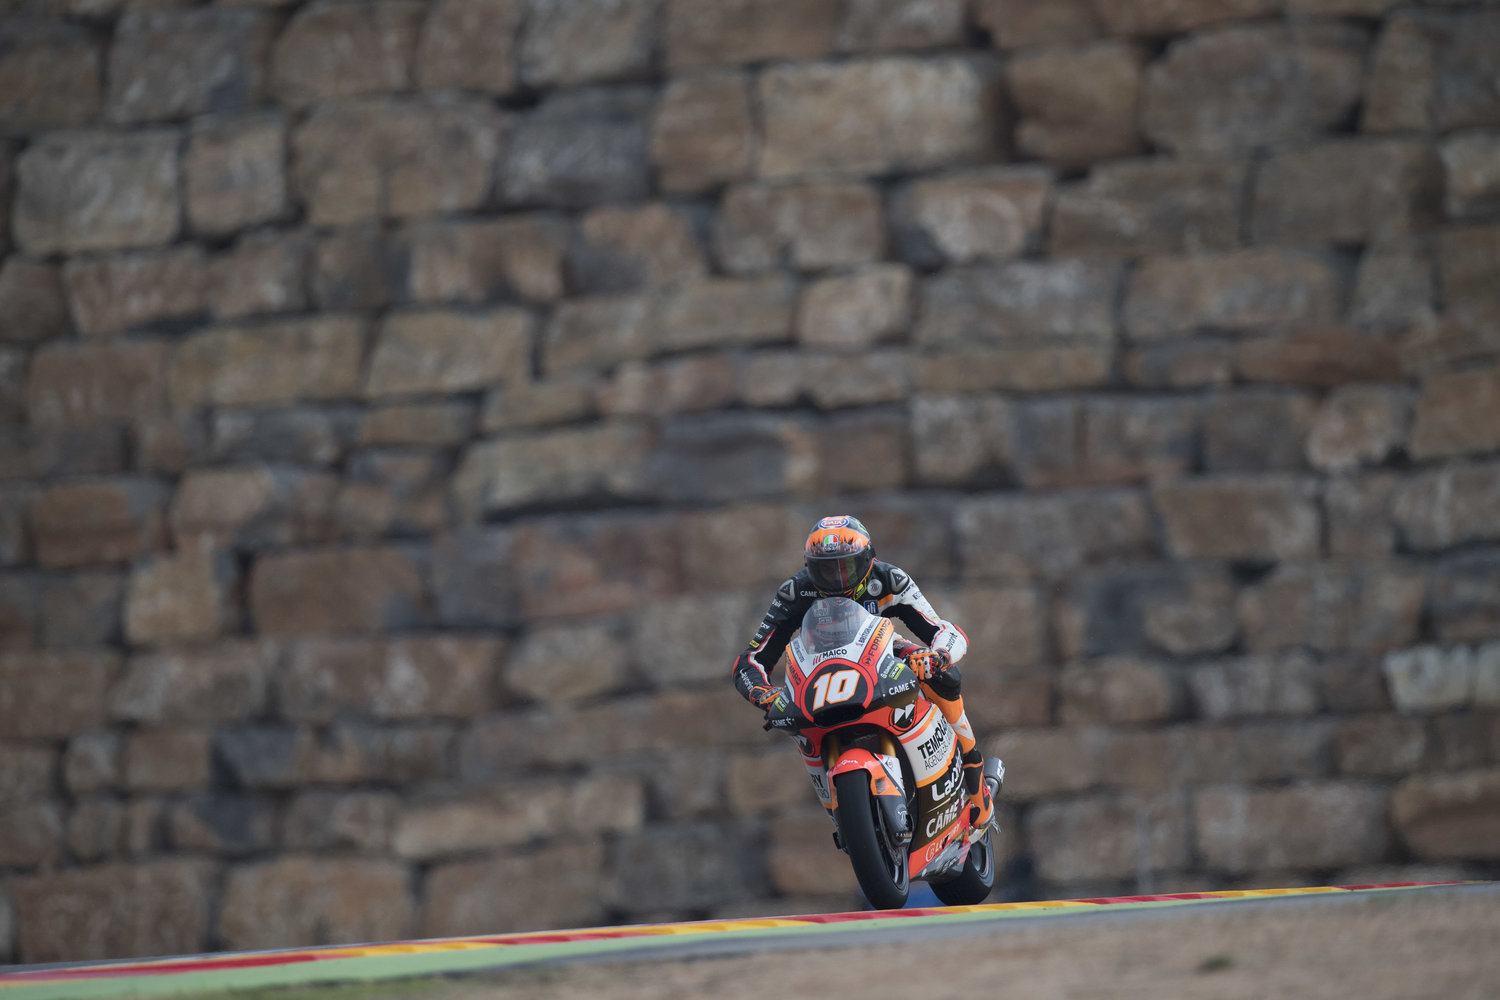 Forward Racing Team faces mixed conditions on day one in Aragon